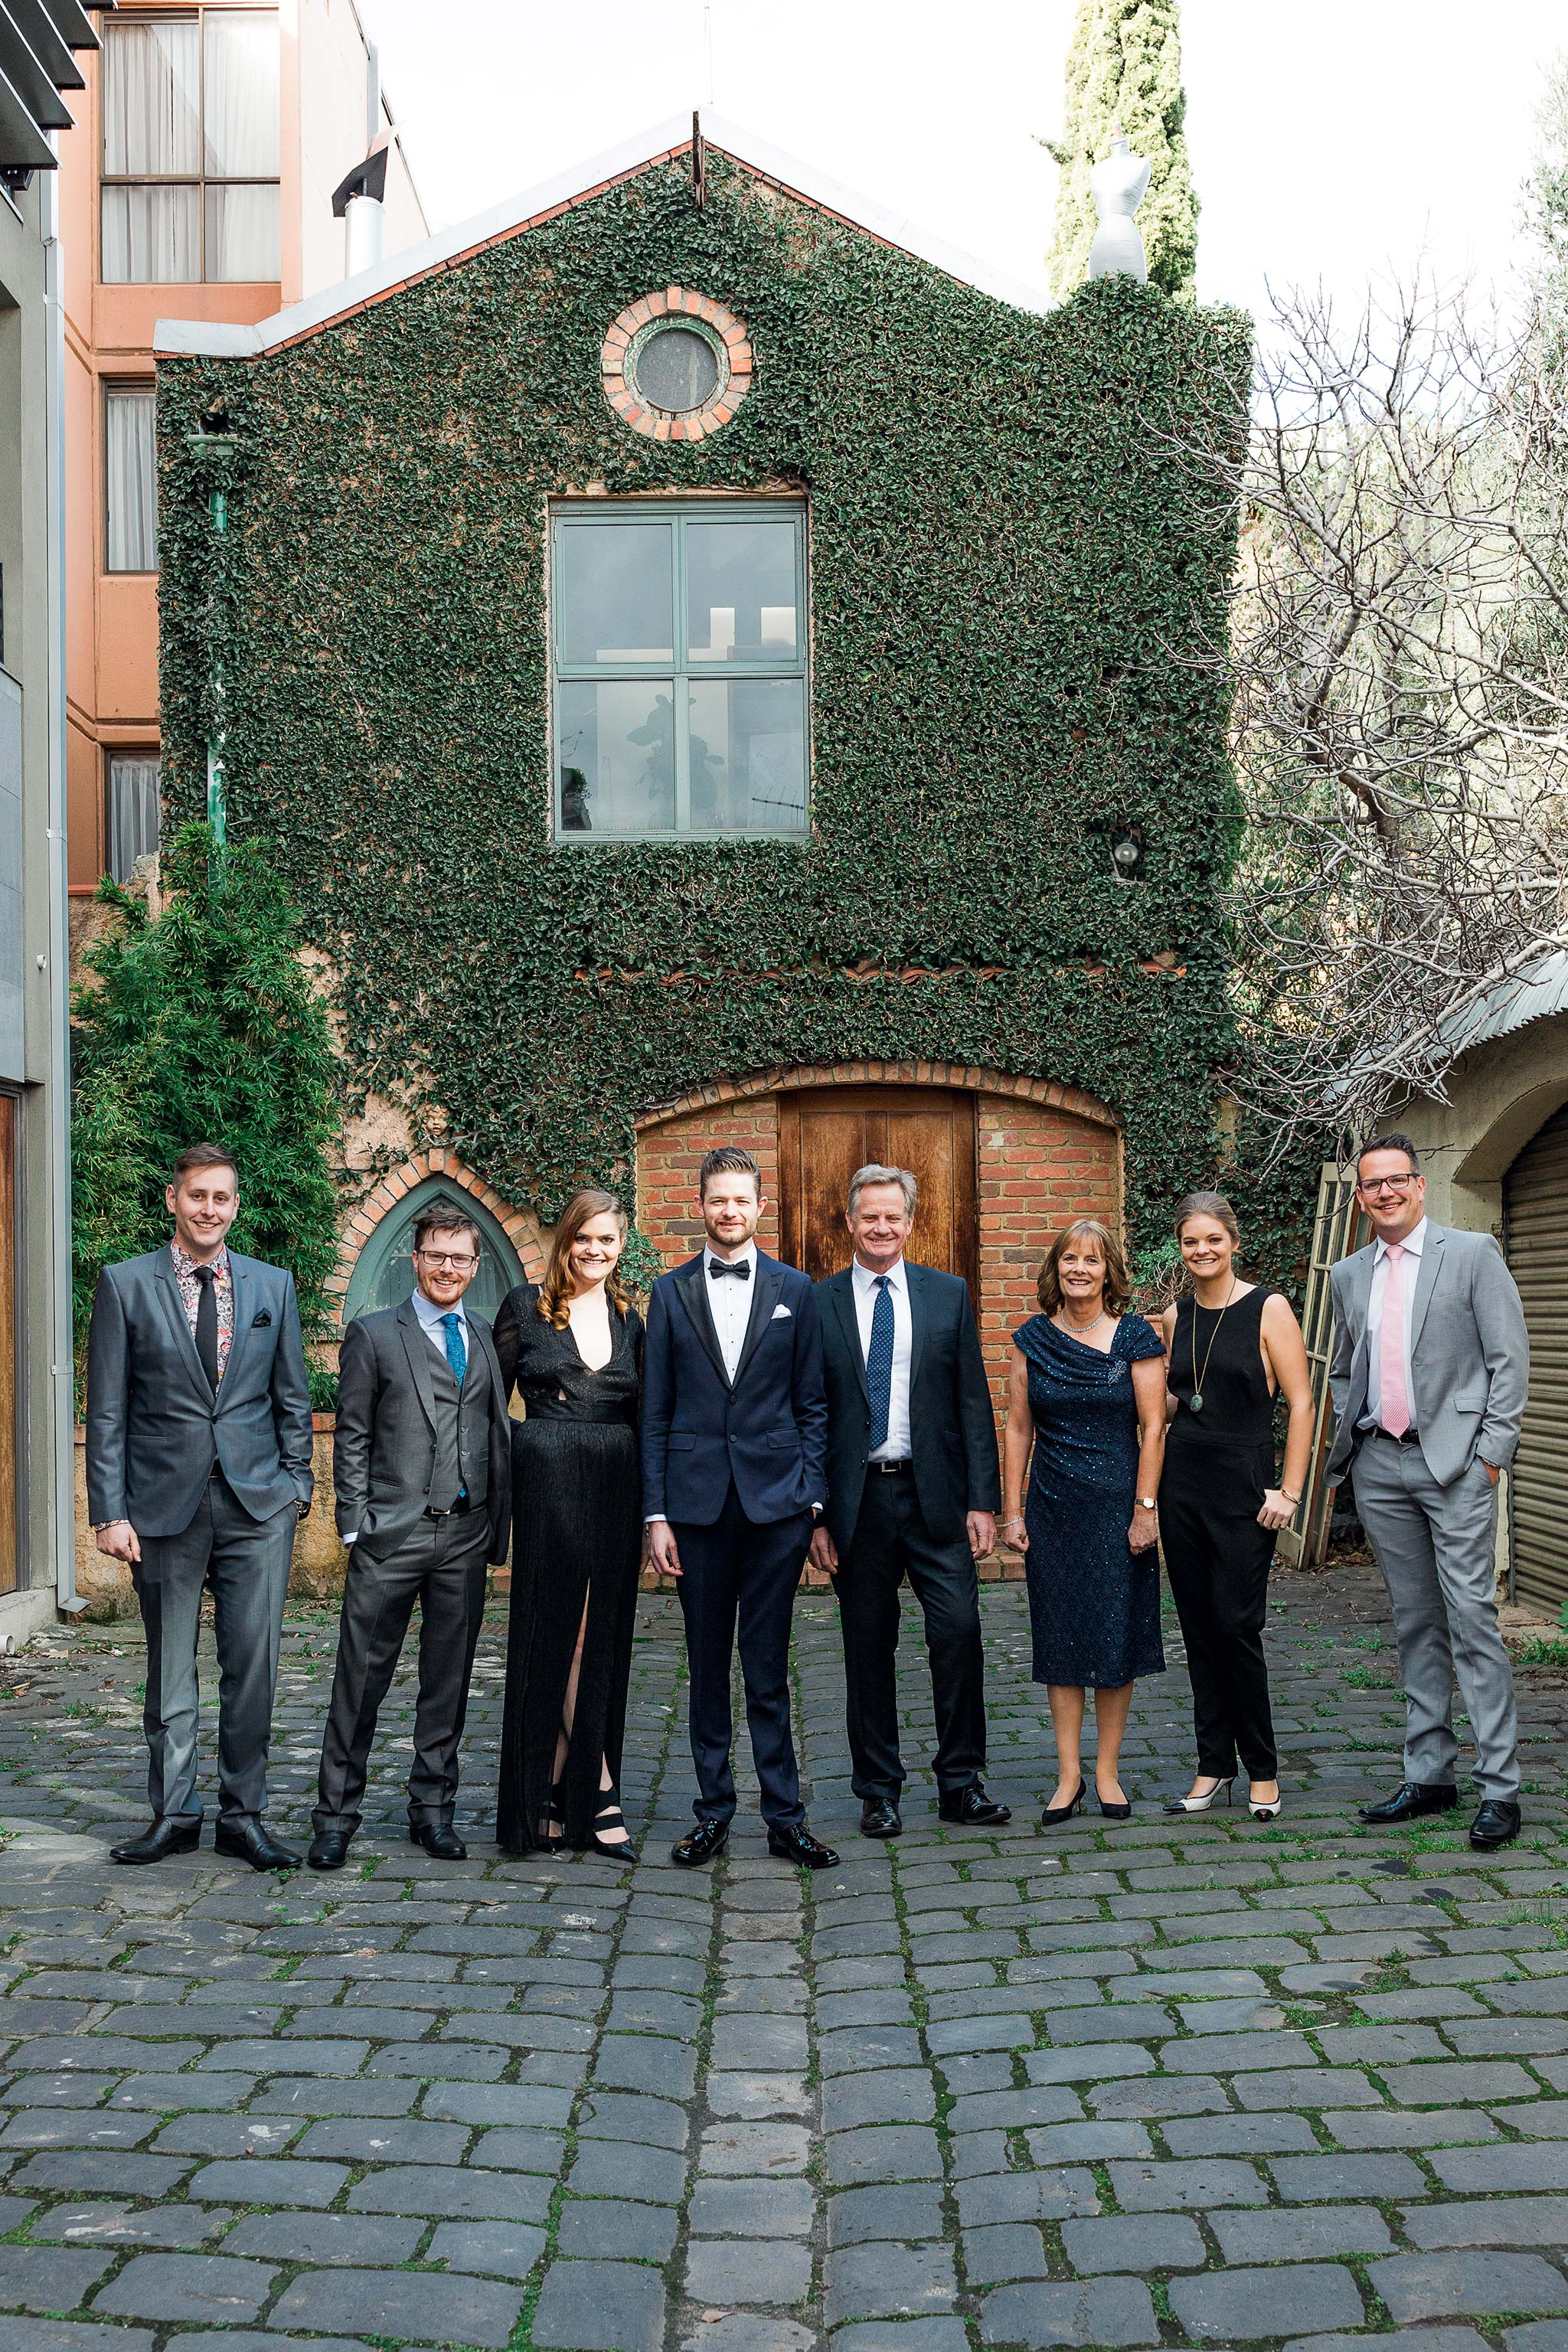 melbourne-fitzroy-st-andrews-conservatory-pumphouse-wedding-groom-family-group